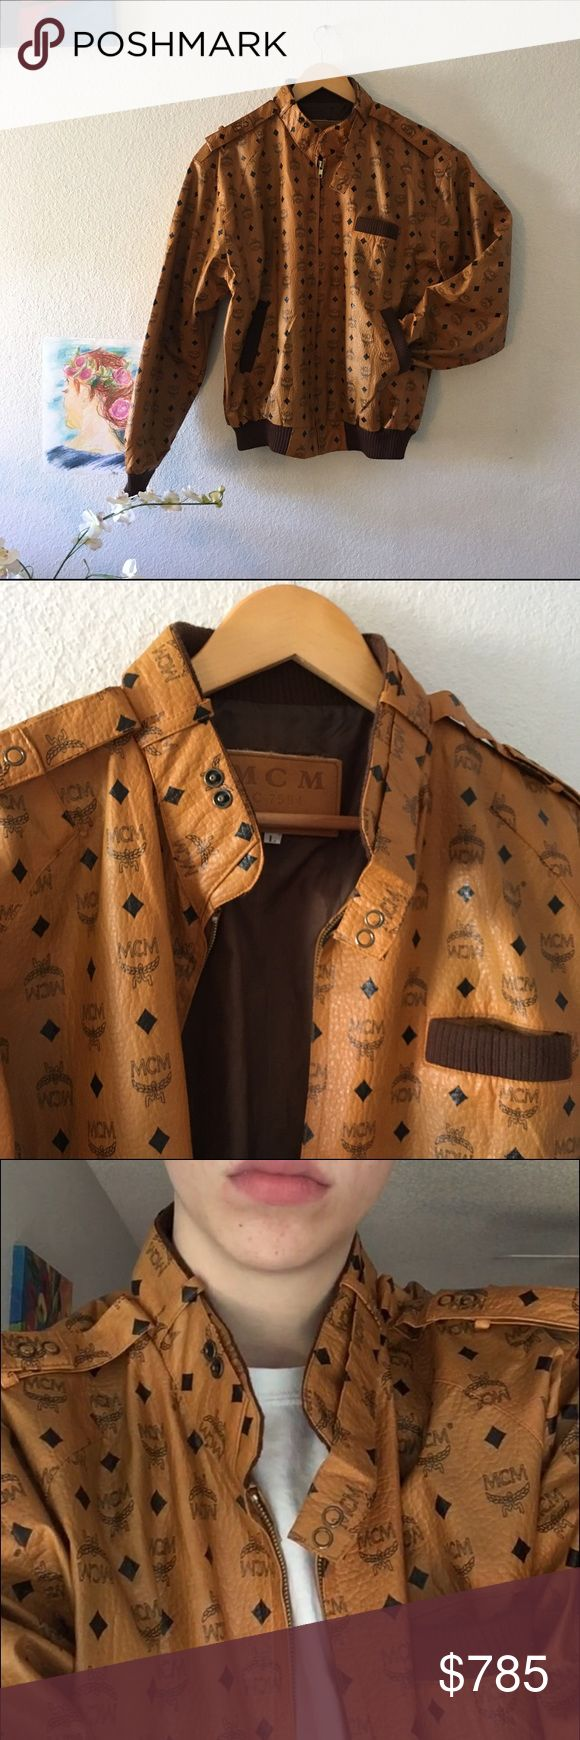 Vintage mcm jacket Vintage mcm cognac leather jacket. Monogram faux leather racer jacket size large. Previous owners took amazing care of it. Has no scent, and only worn once for a picture. MCM Jackets & Coats